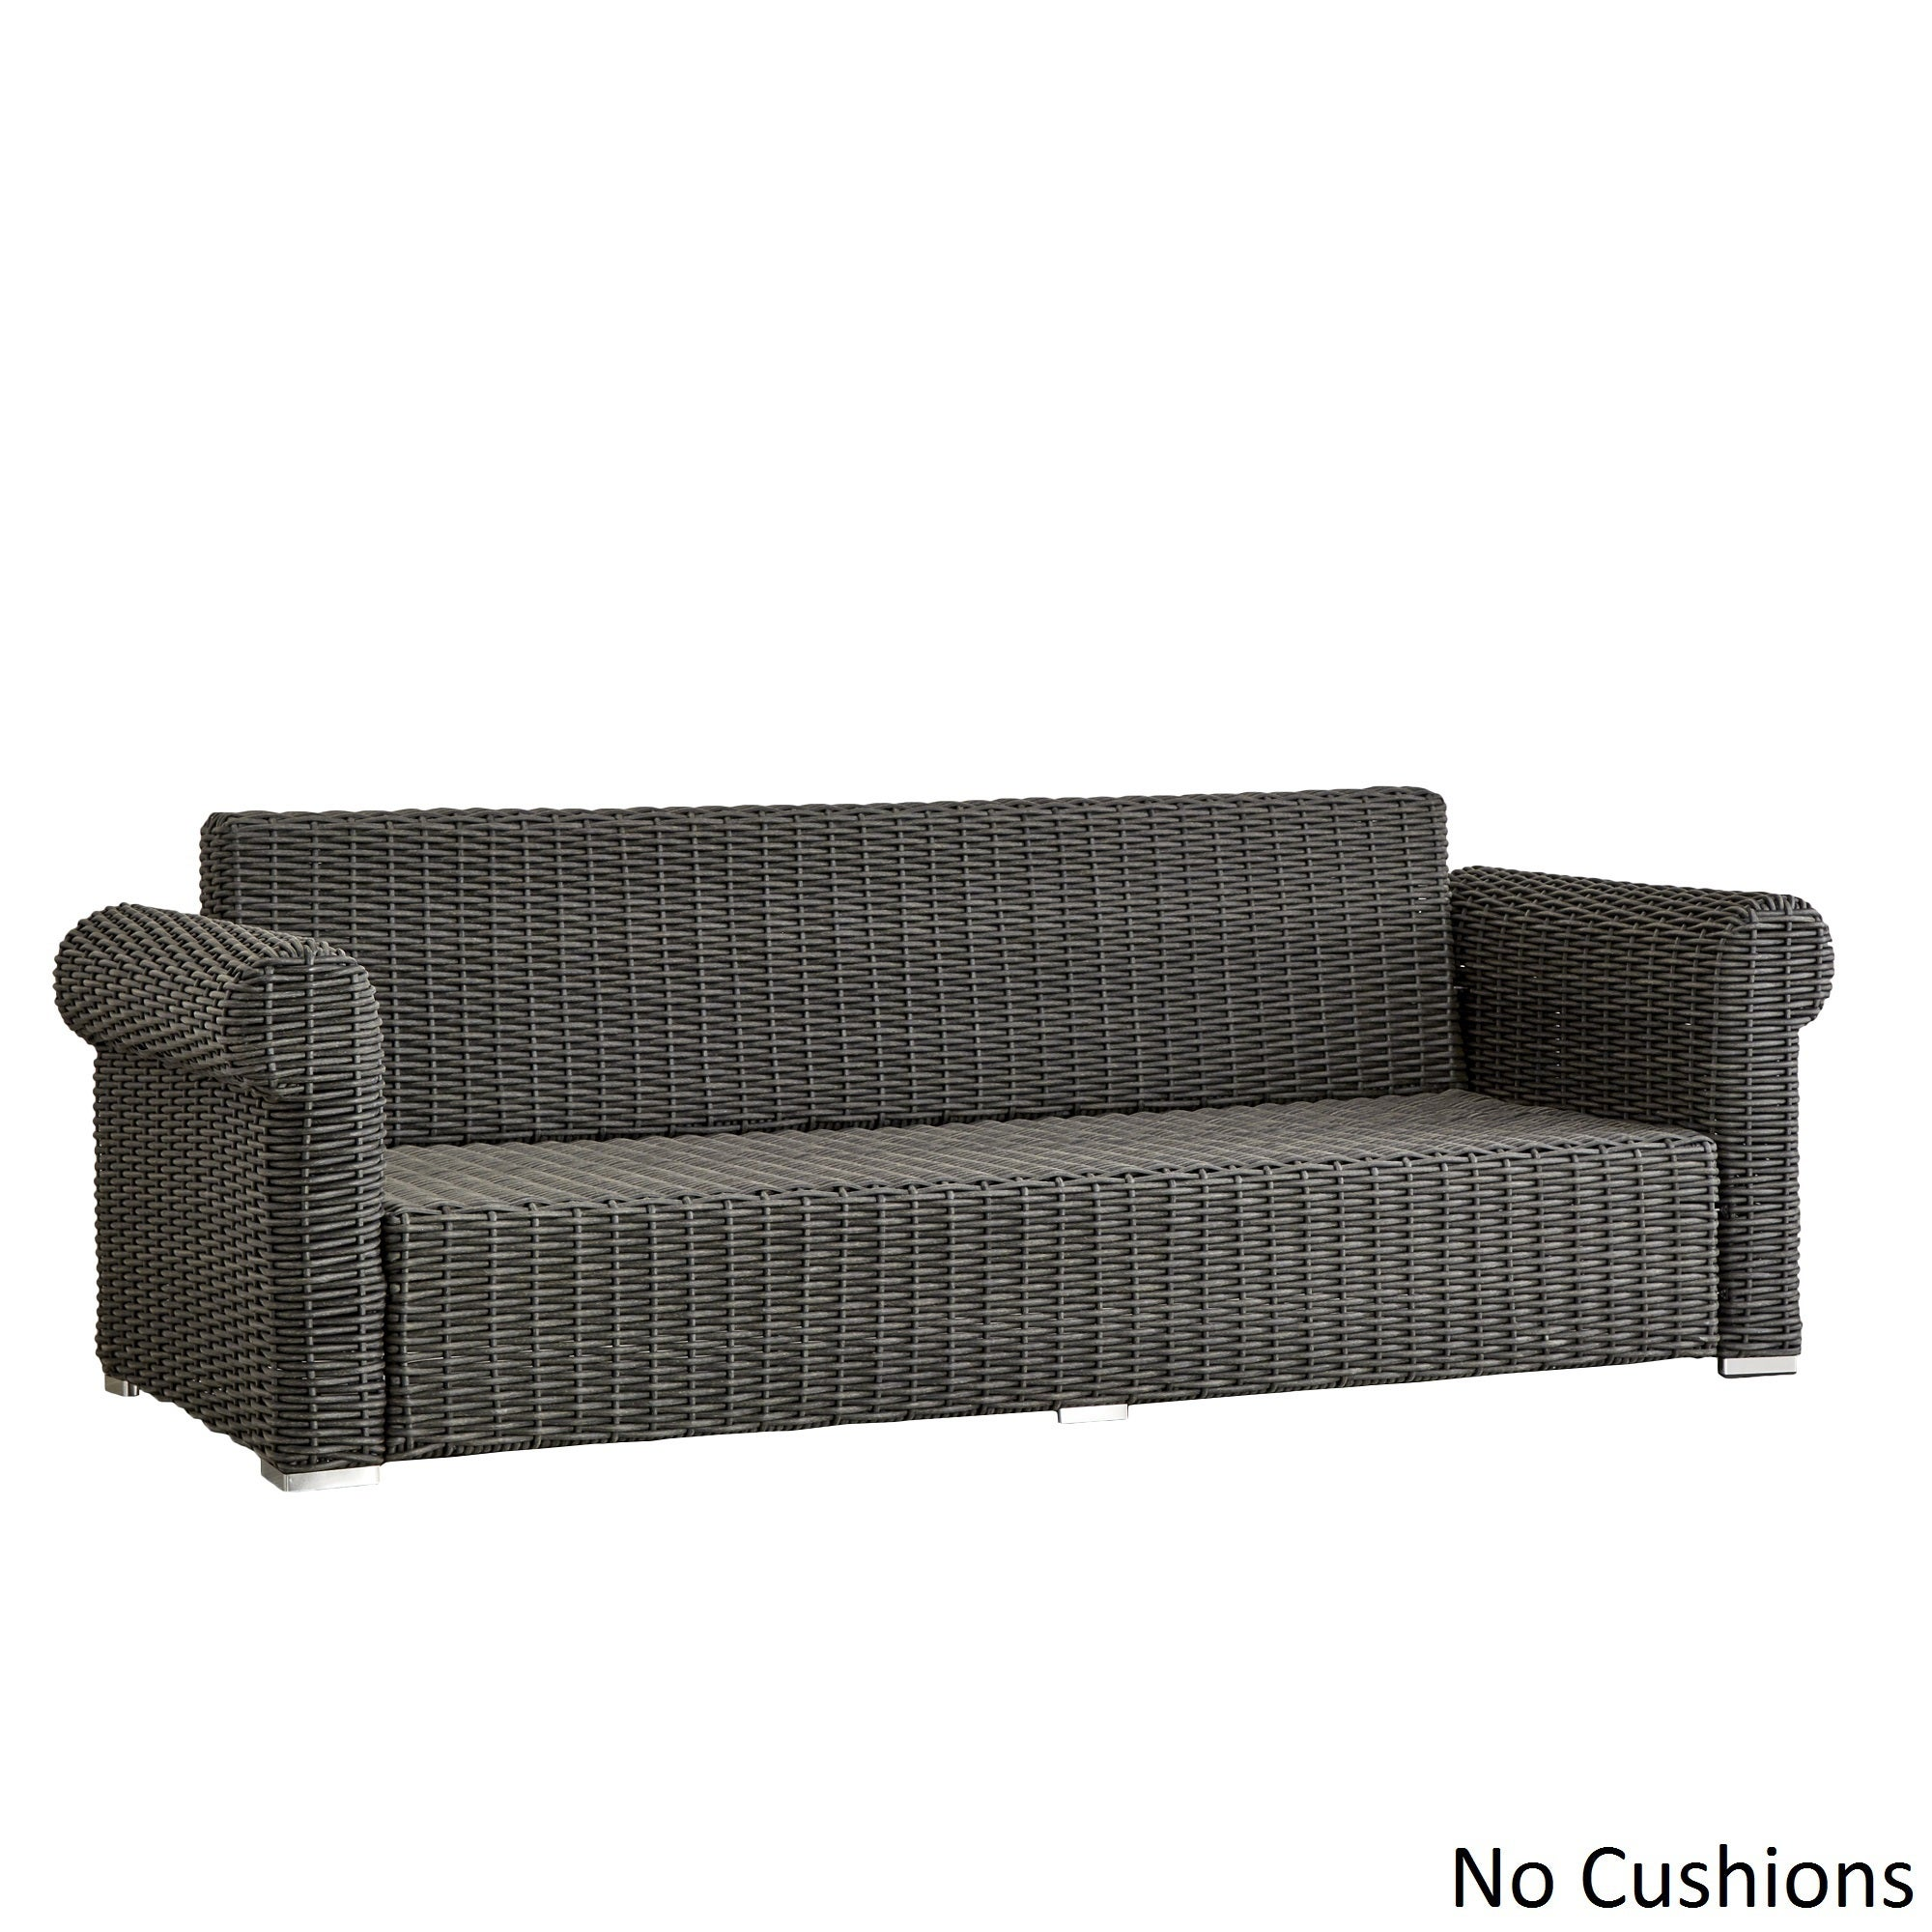 Barbados Wicker Outdoor Cushioned Grey Charcoal Sofa With Rolled Arm Inspire Q Oasis Free Shipping Today 12747569